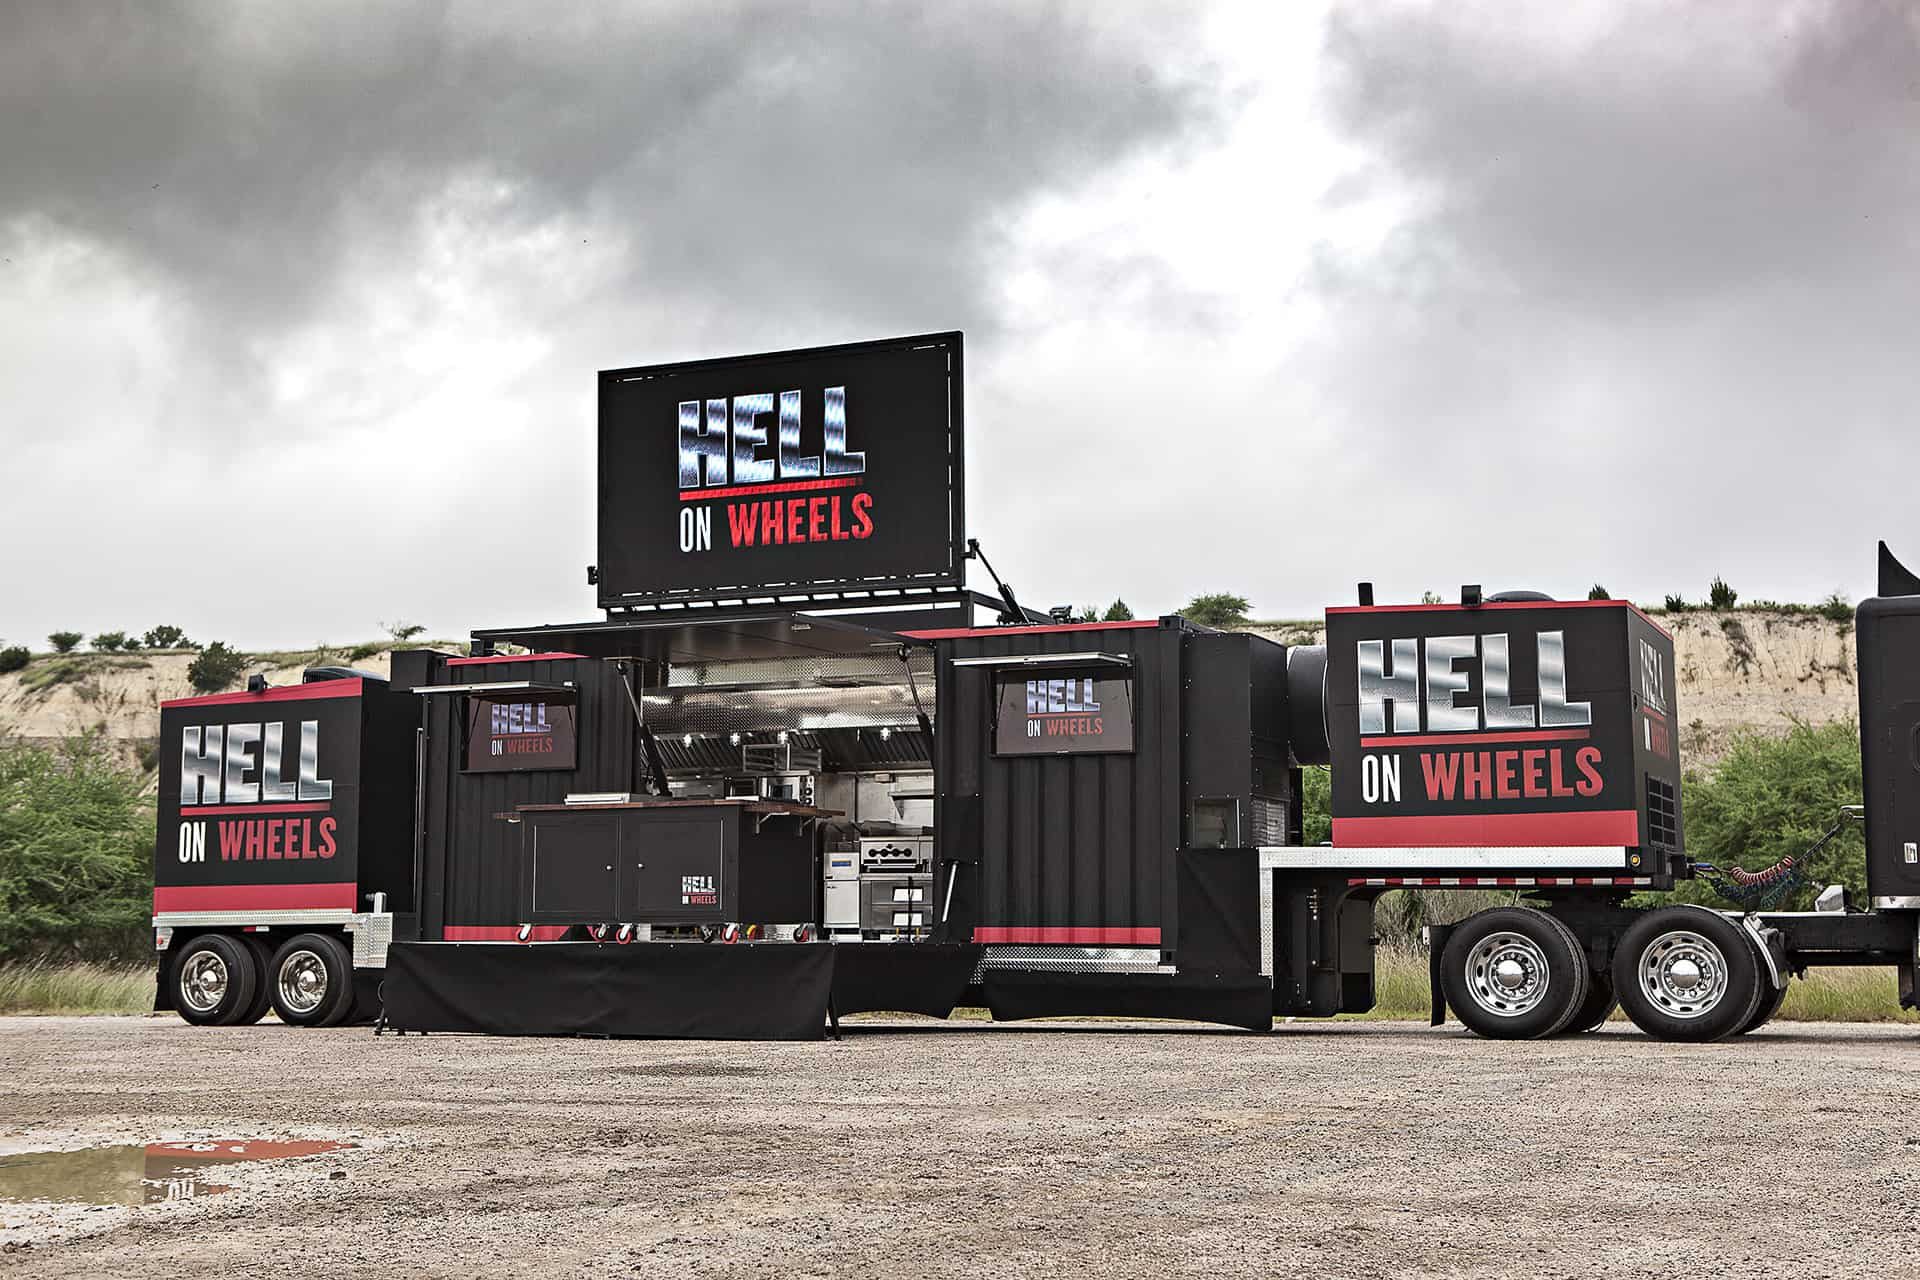 gordon-ramsay-hell-on-wheels-shipping-container-trailer-mobile-kitchen-11